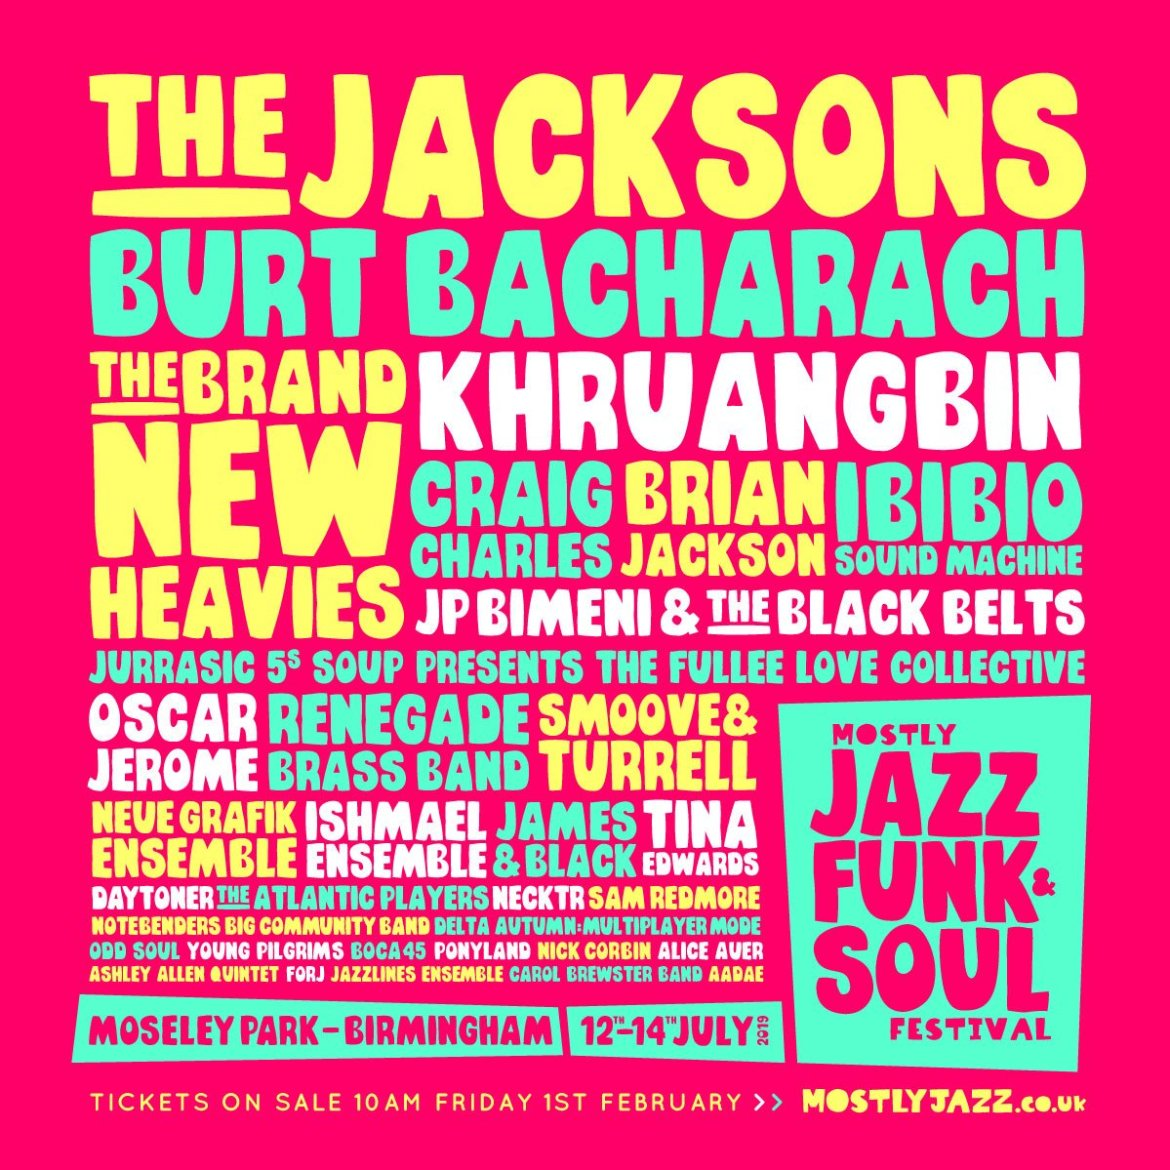 PREVIEW: Mostly Jazz, Funk & Soul Festival 2019